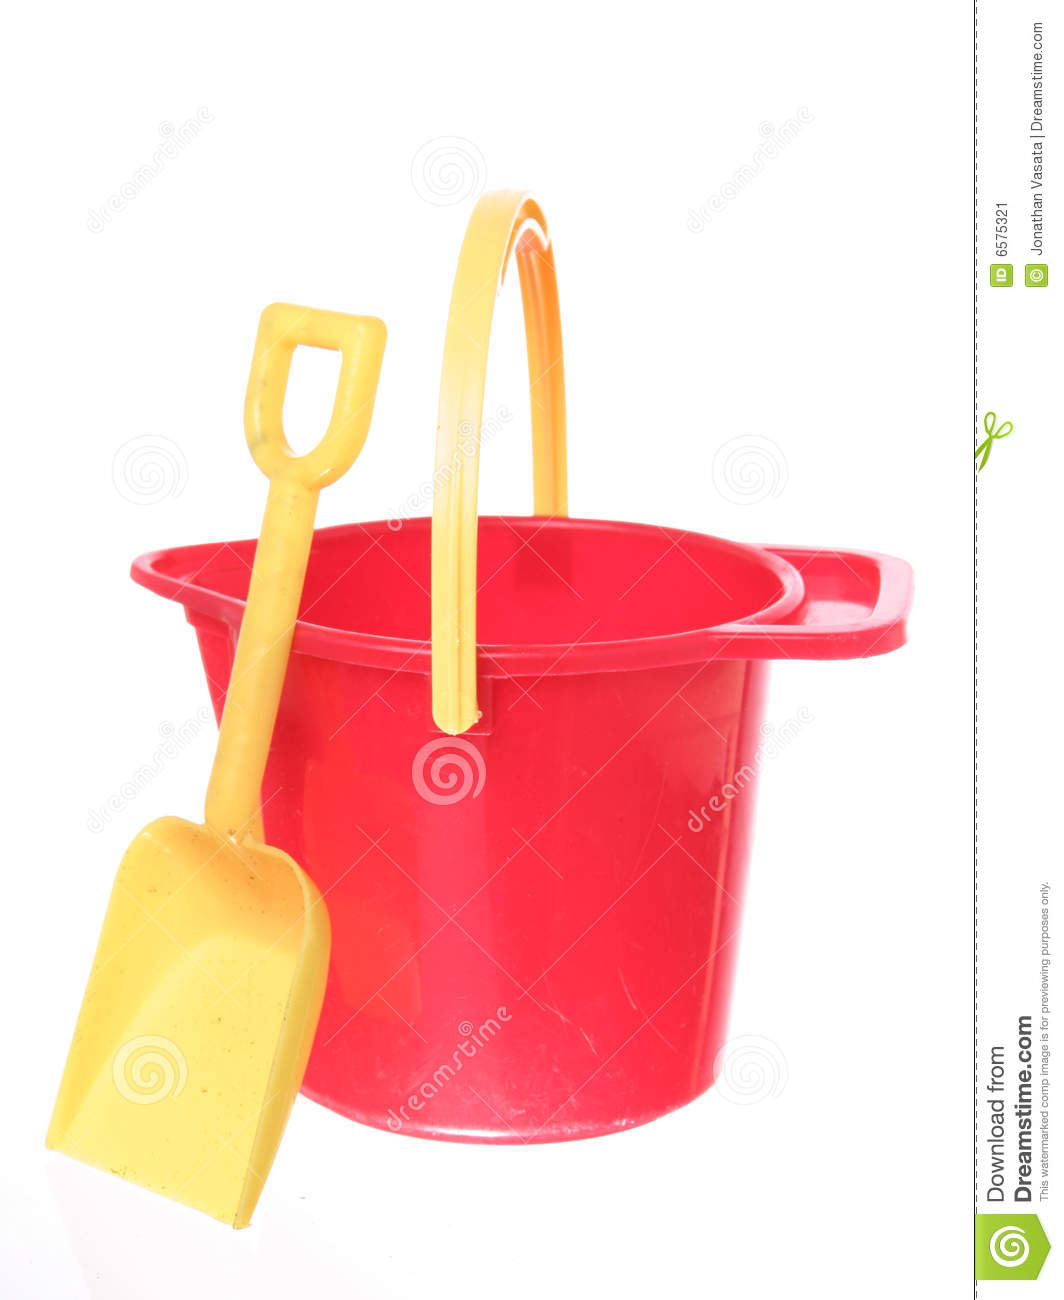 Yellow handle up on red sand bucket with yellow shovel, isolated on